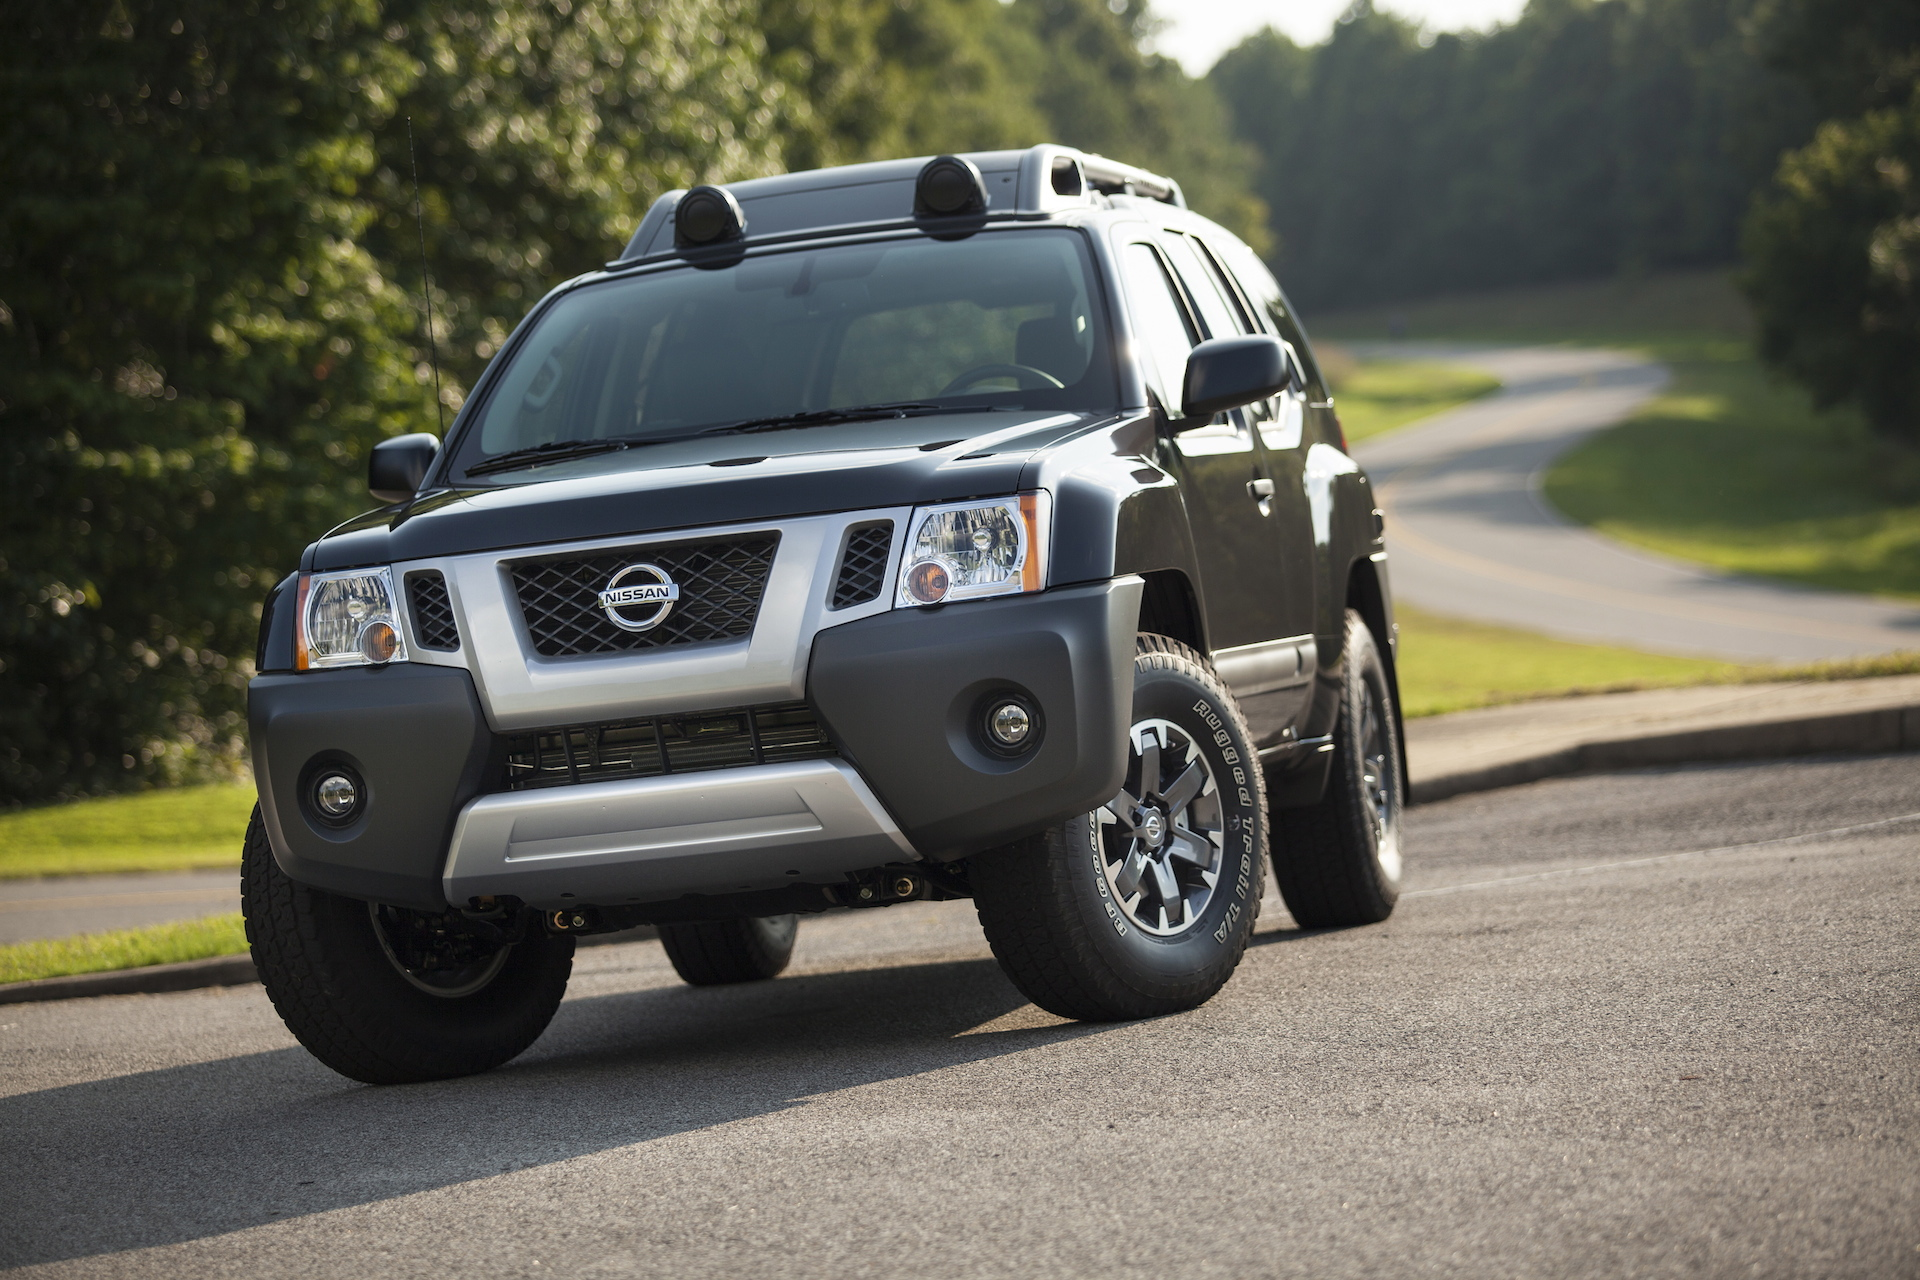 2015 nissan xterra review ratings specs prices and photos the car connection https www thecarconnection com overview nissan xterra 2015